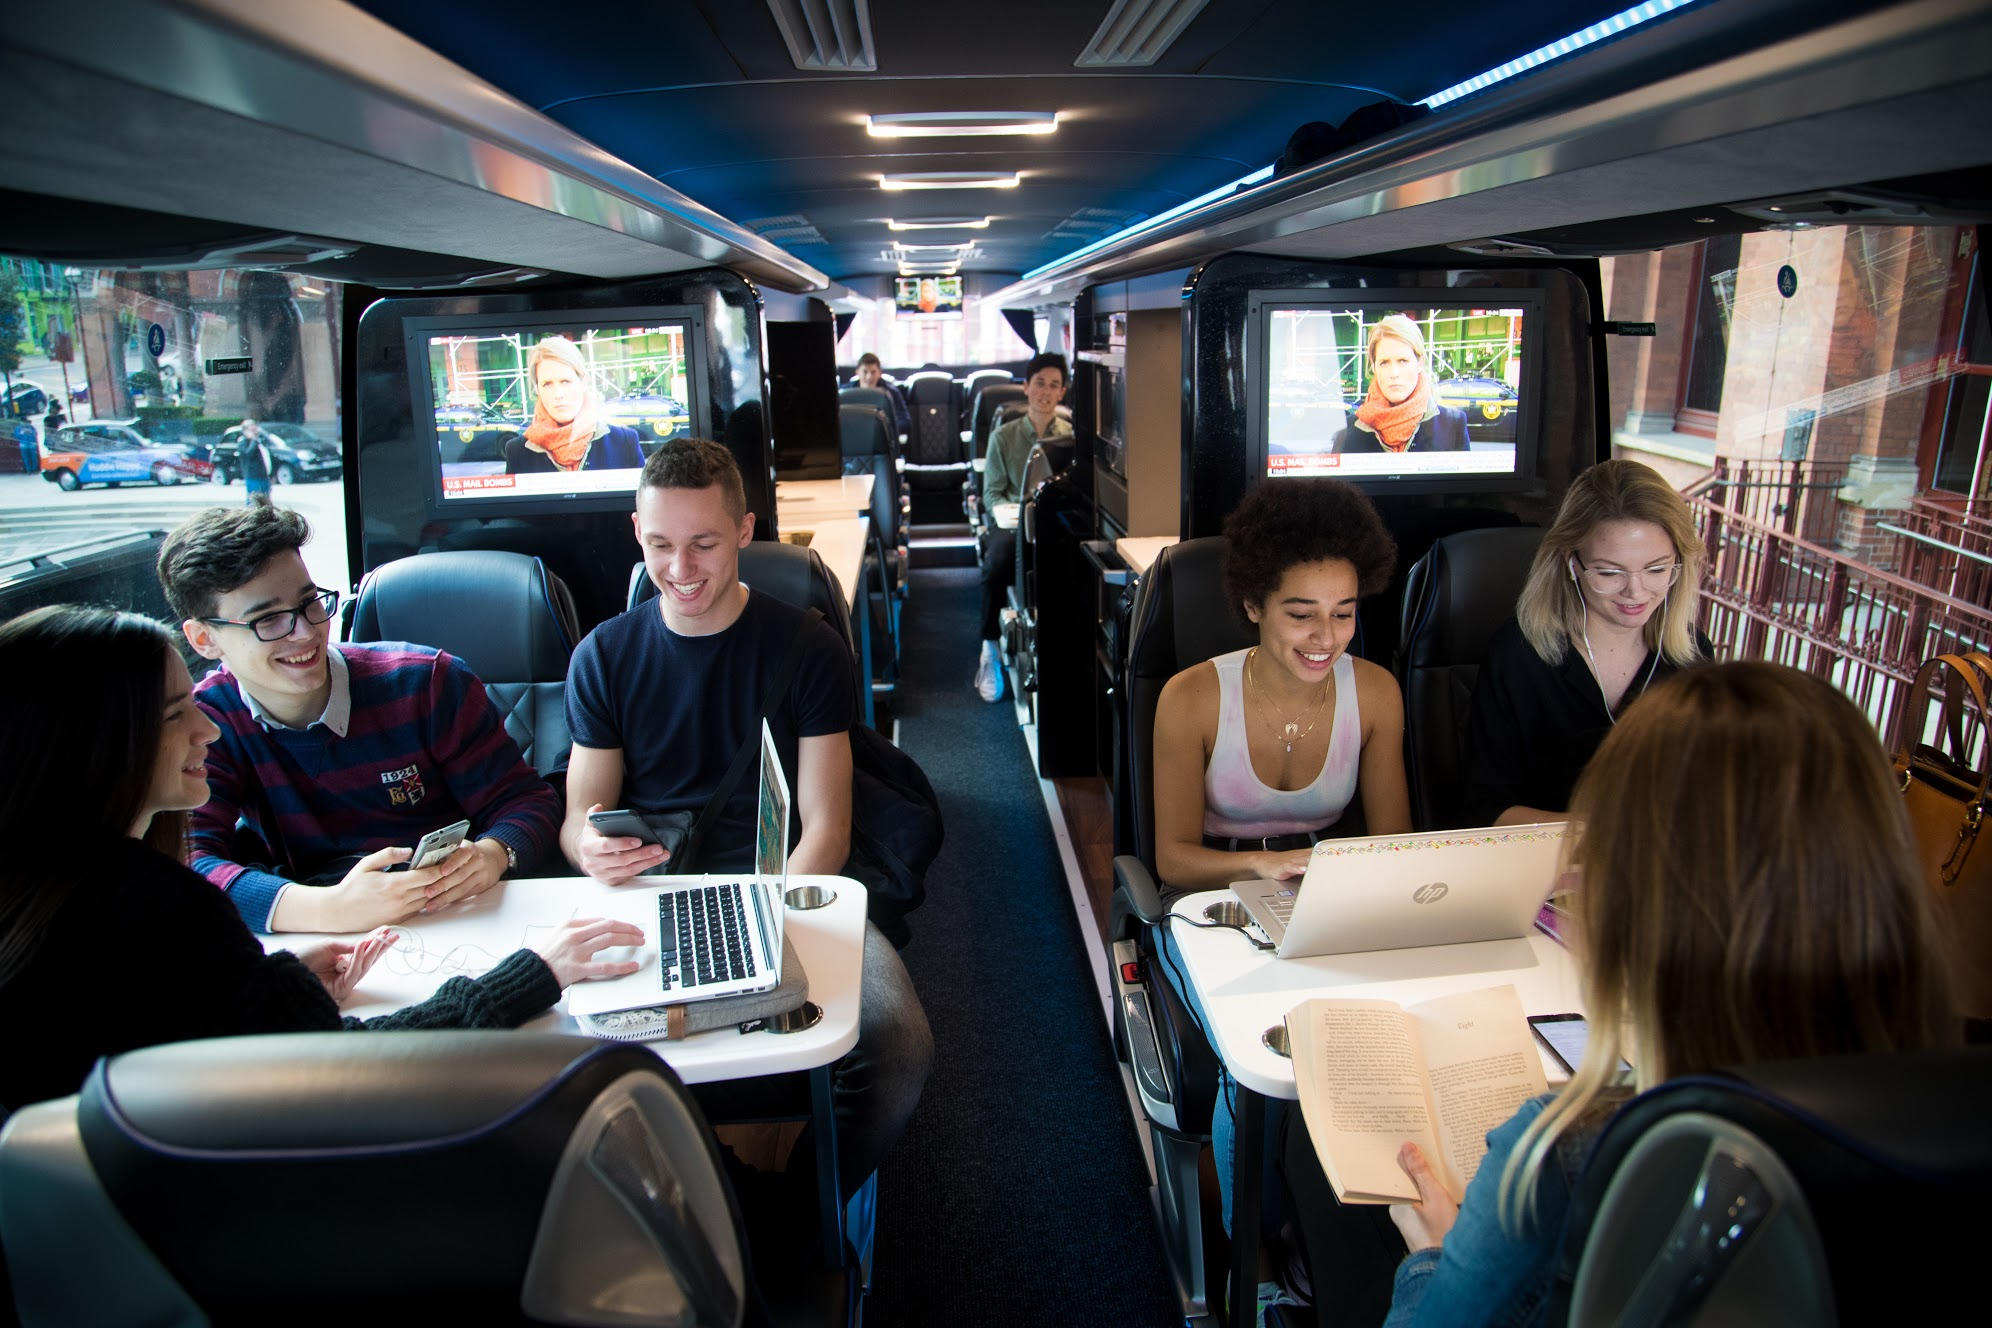 Access customers throughout the UK - Snap lists your trips and finds the customers who want to buy seats on them. With our extensive marketing campaigns Snap continue to open up coach travel to more and more travellers every single day.